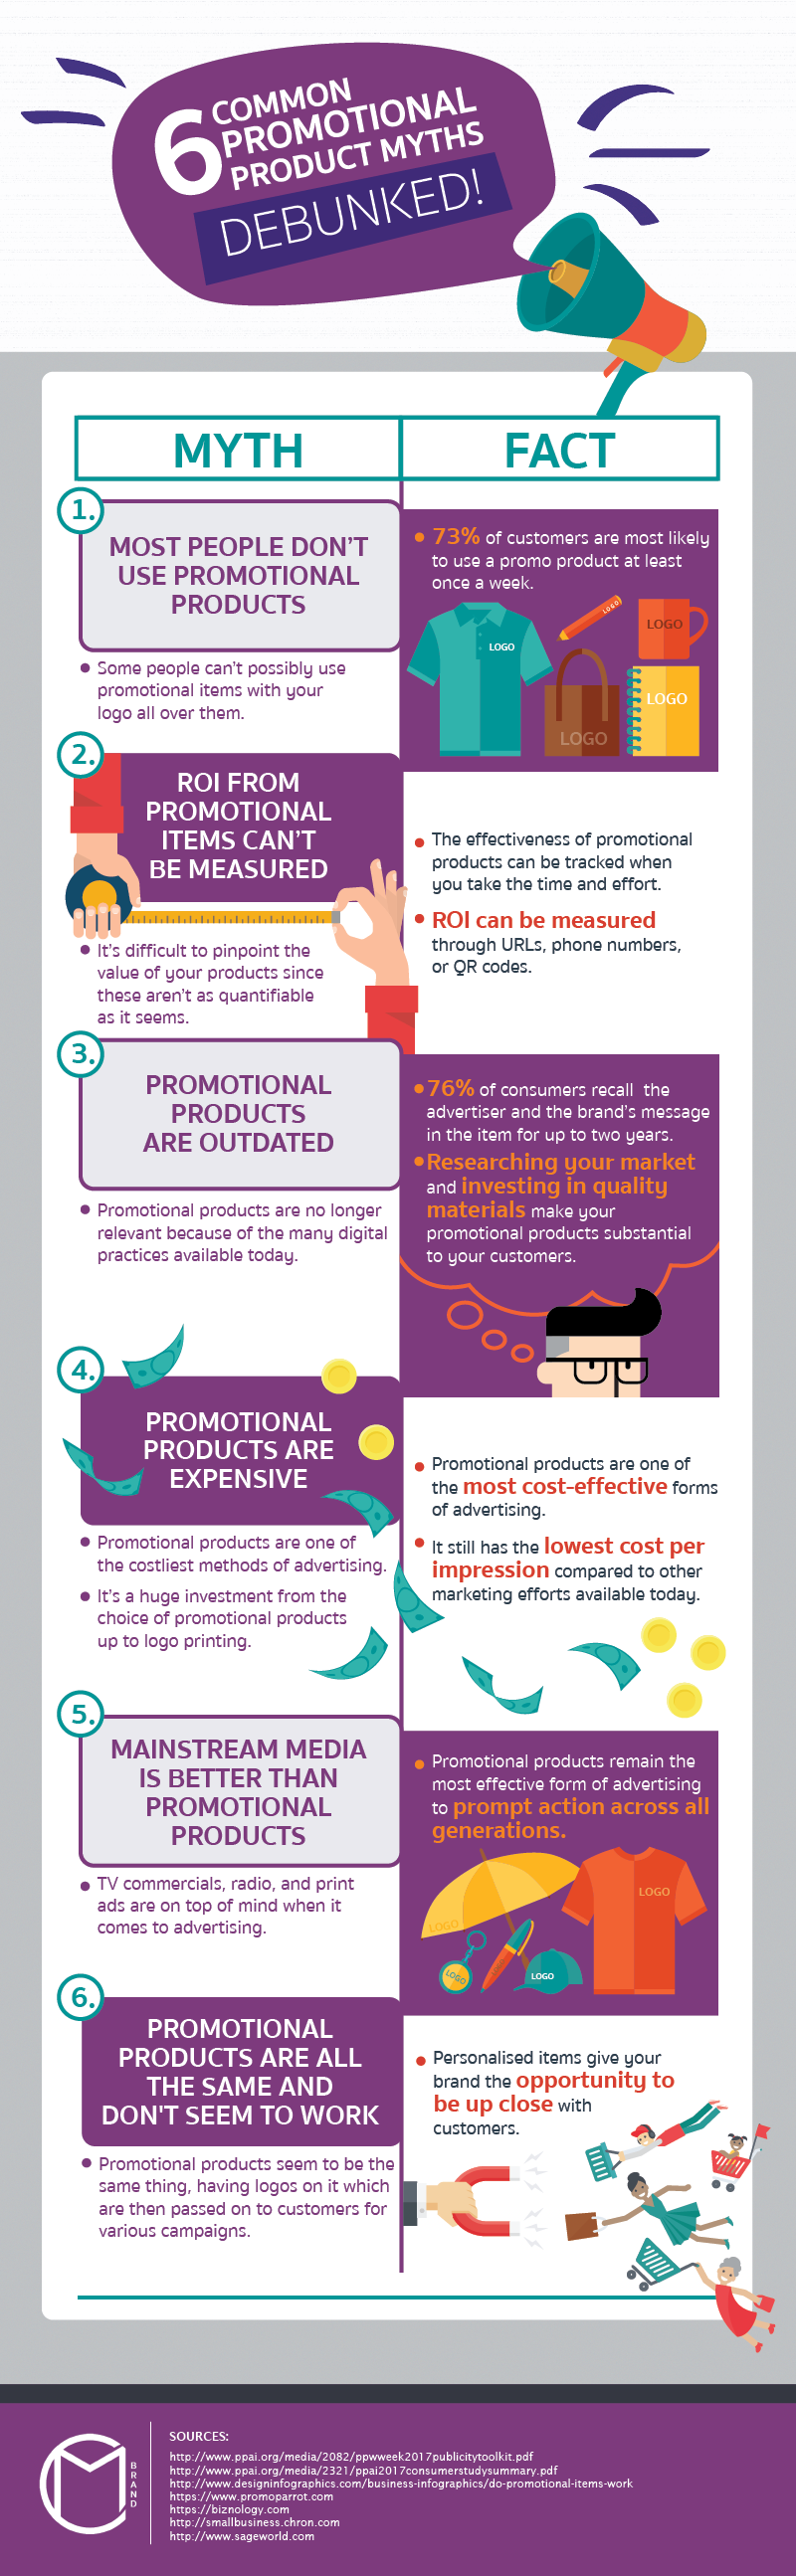 6 Common Promotional Product Myths Debunked-infogfraphic